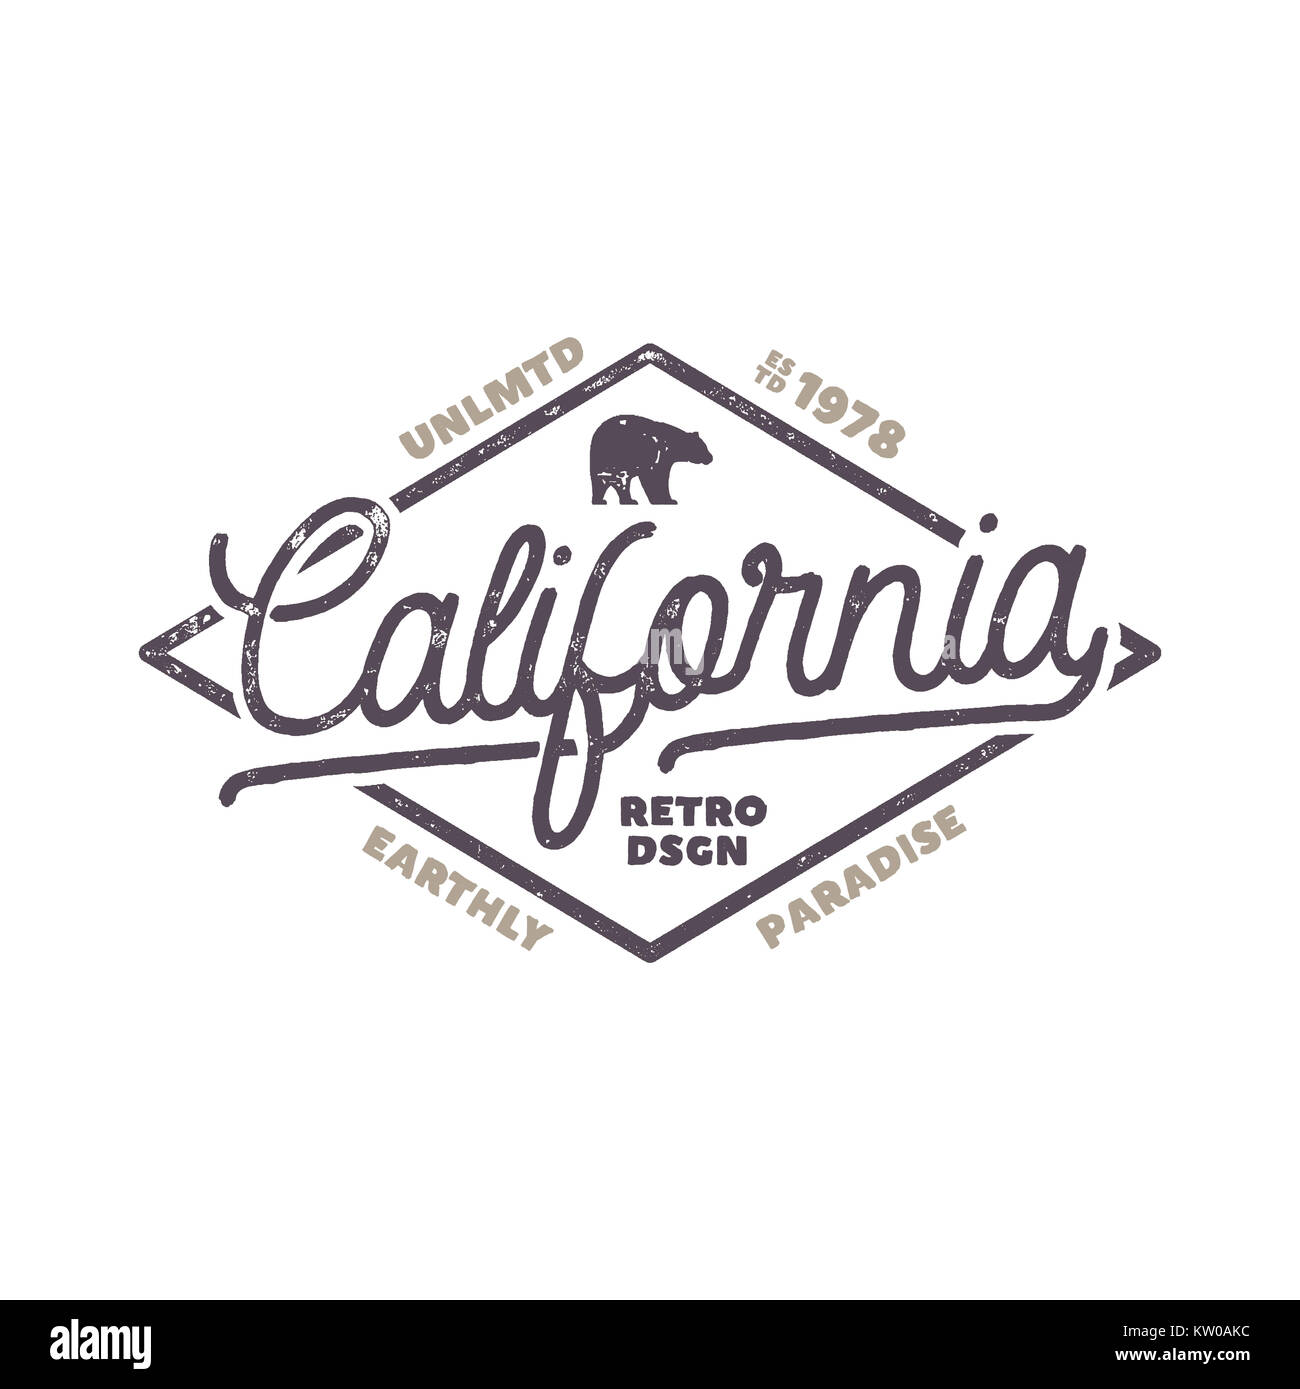 Summer California label with bear and typography elements. Retro surf style for t-shirts, emblems, mugs, apparel - Stock Image